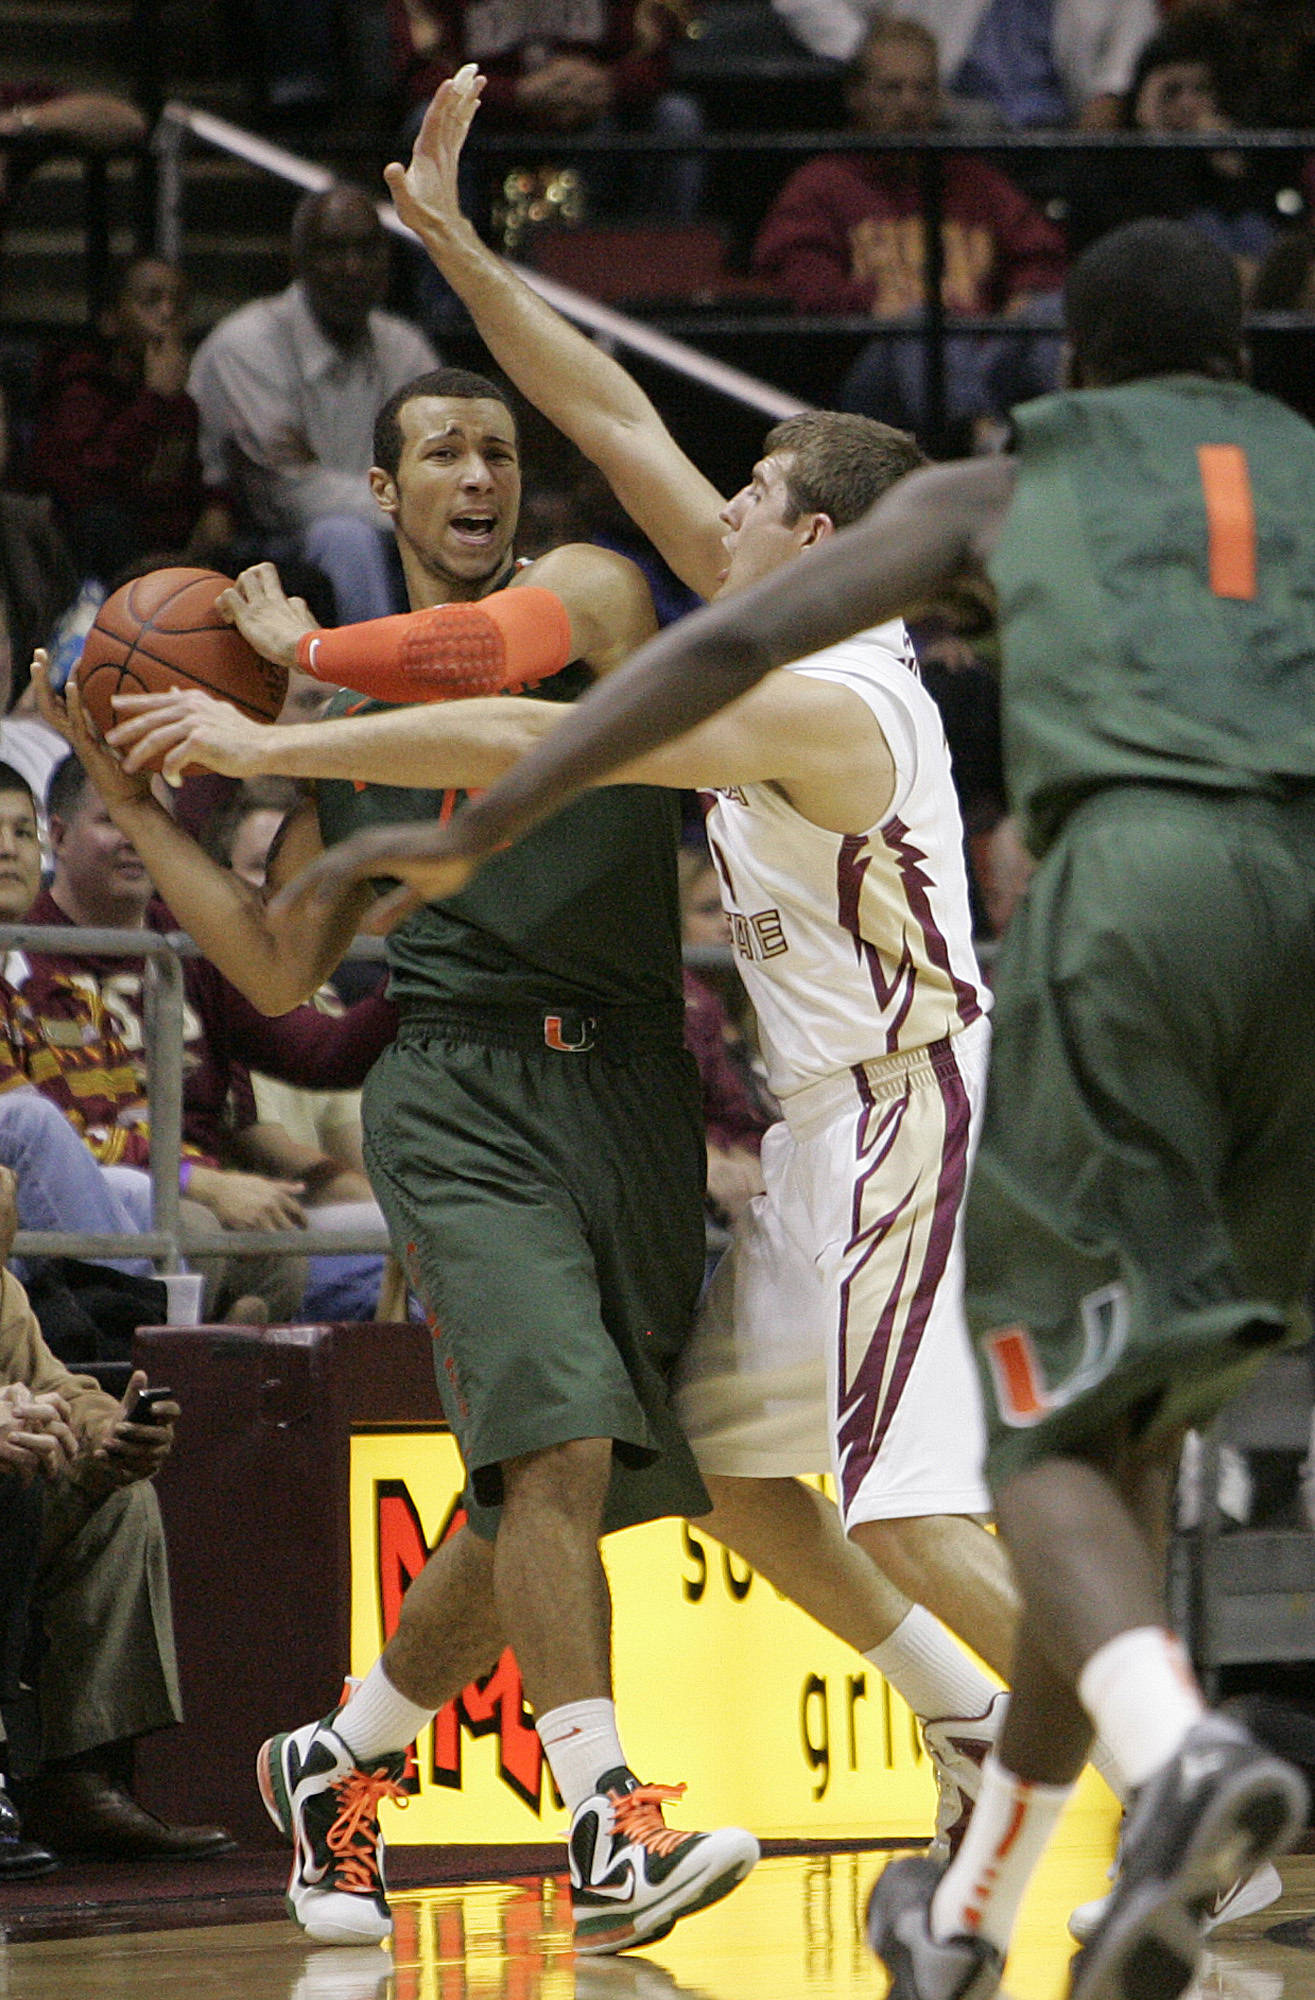 Miami's Trey McKinney Jones looks for help from his teammates as he backed up by the defense of Florida State's Luke Loucks  in the second half of an NCAA college basketball game. Florida State won 64-59 on Saturday, Feb. 11, 2012 in Tallahassee, Fla.(AP Photo/Steve Cannon)